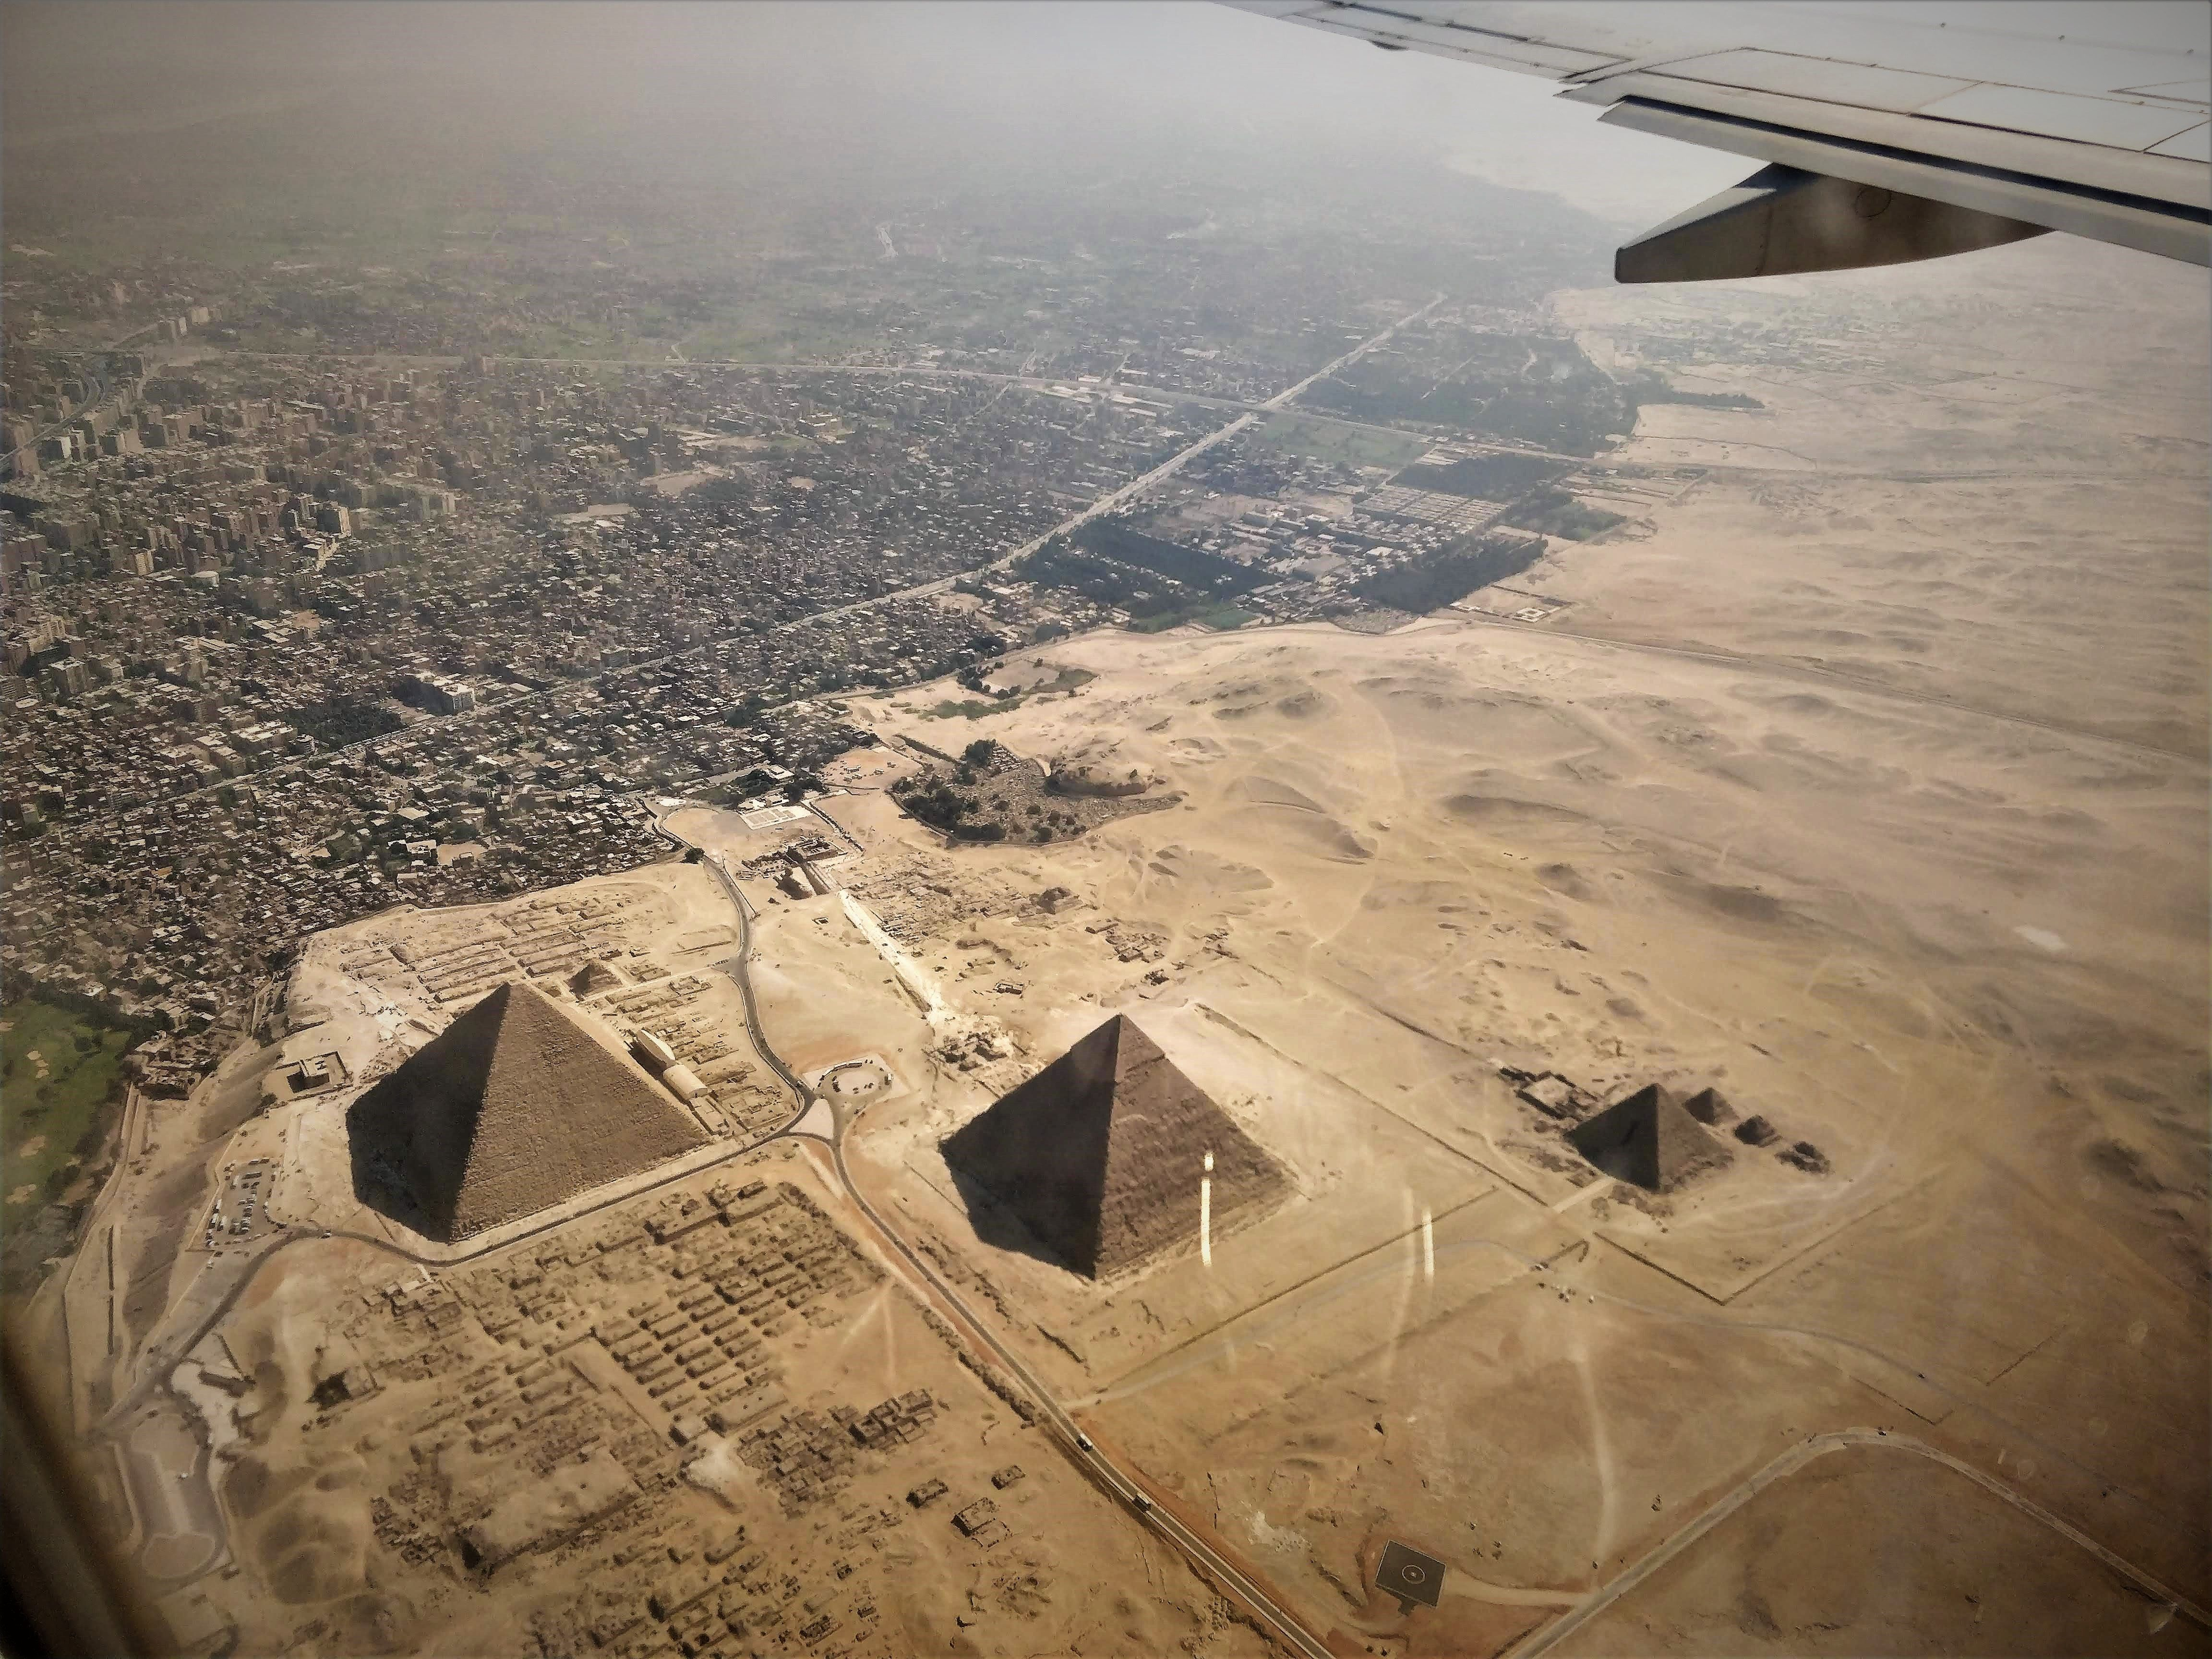 Cheap Flights to Egypt from 624 Pyramids of giza, Great